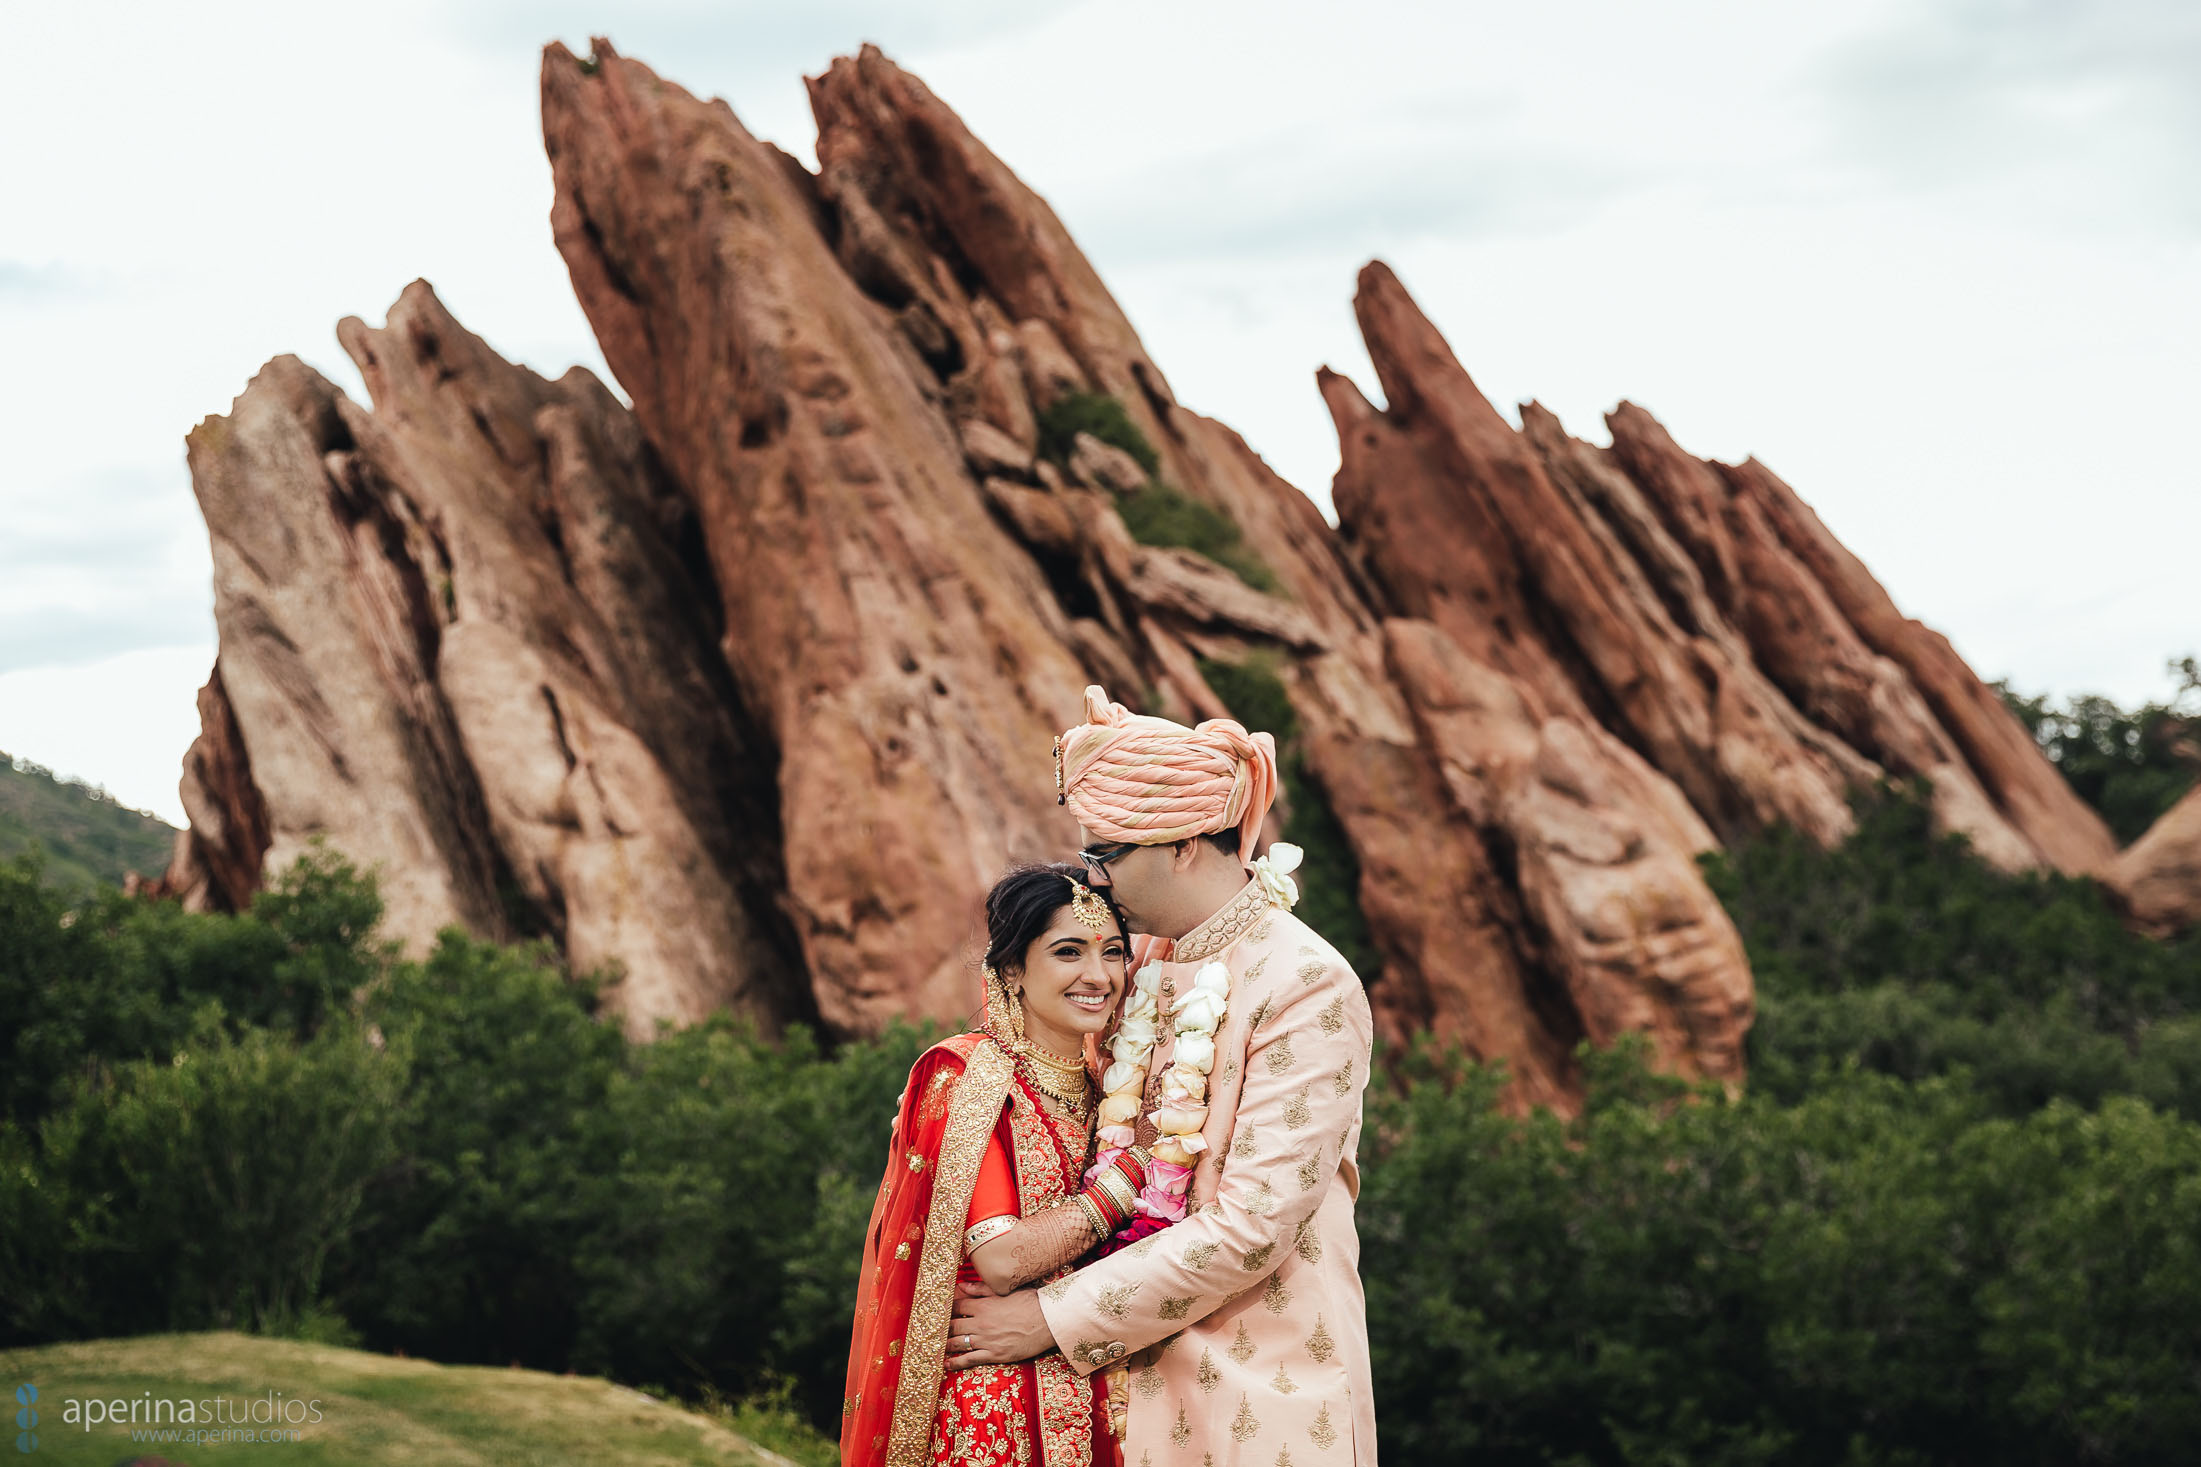 Indian Wedding Photography by Aperina Studios - beautiful Hindu couple portraits with red rocks in Denver, CO.